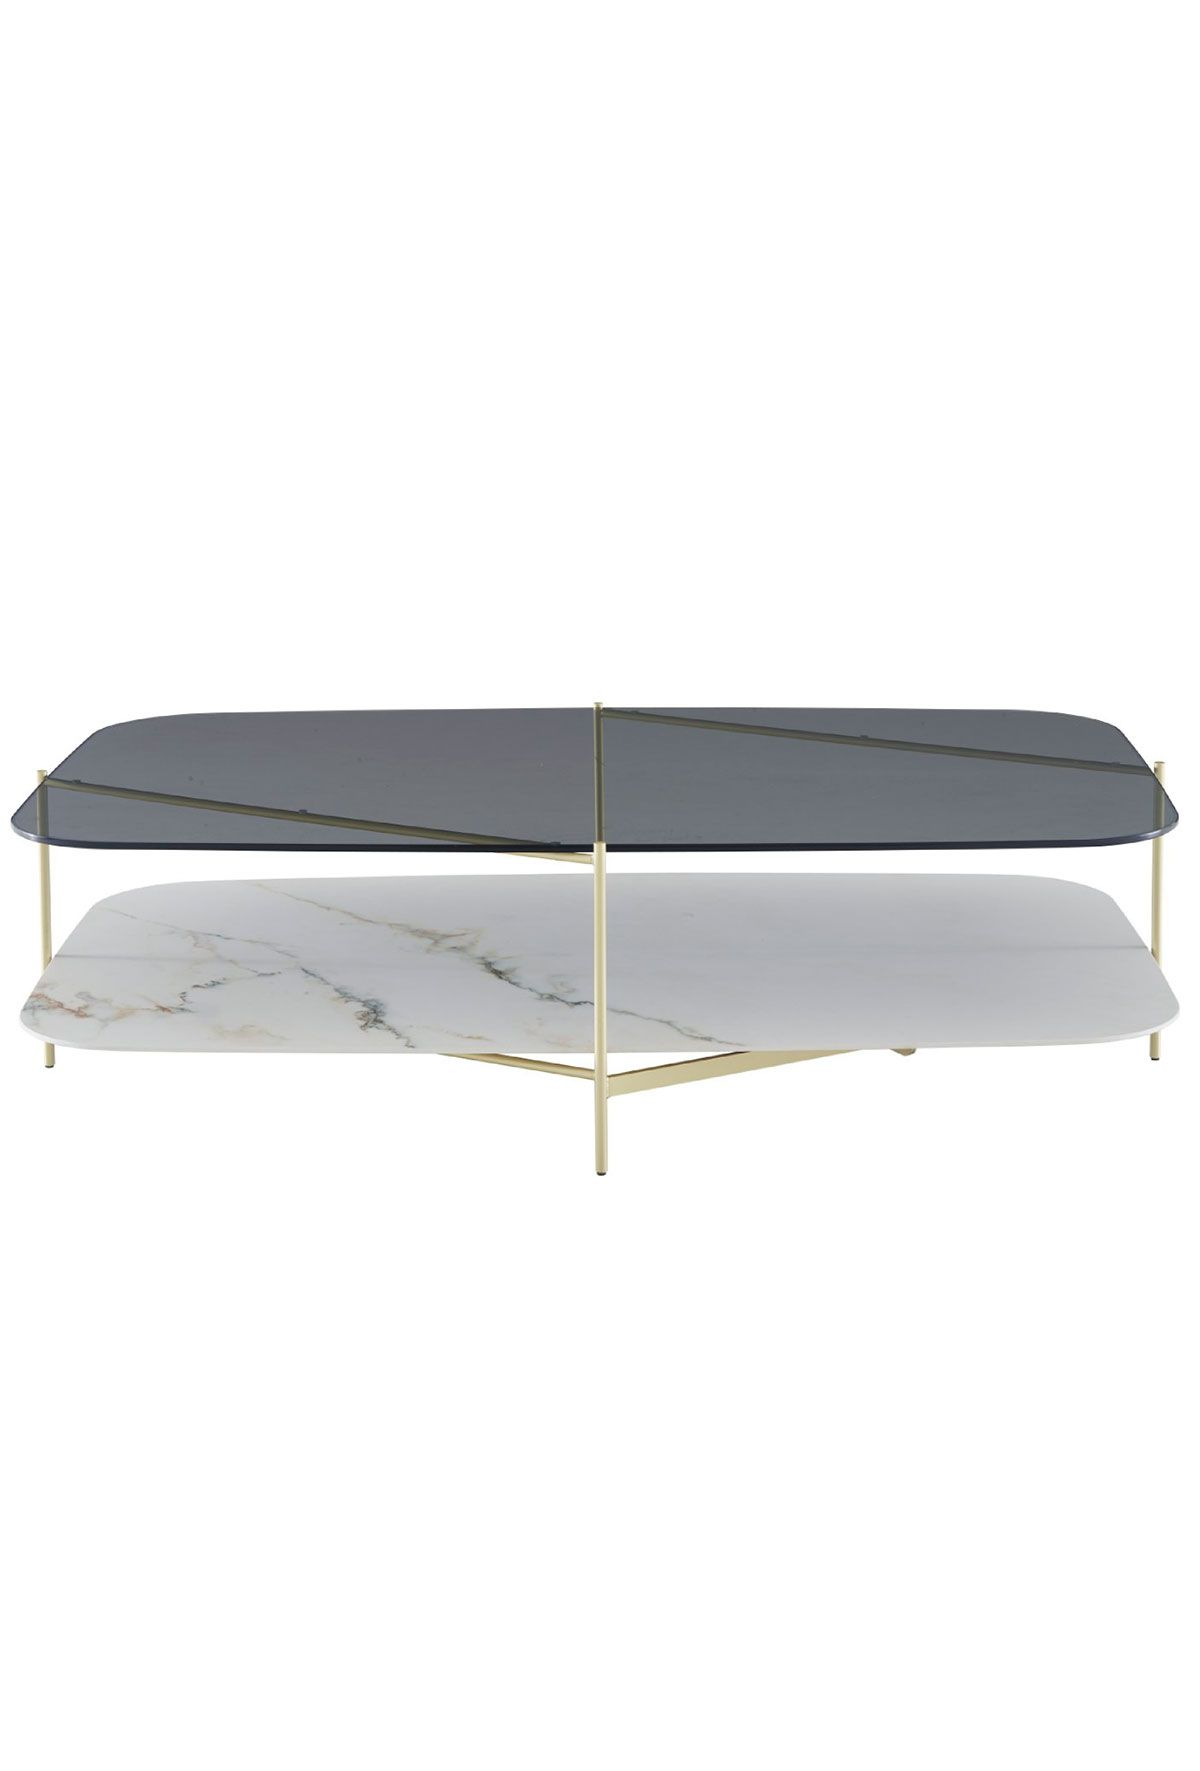 Clyde By Ligne Roset Modern Tables Living Table Coffee Table Coffee Table Design